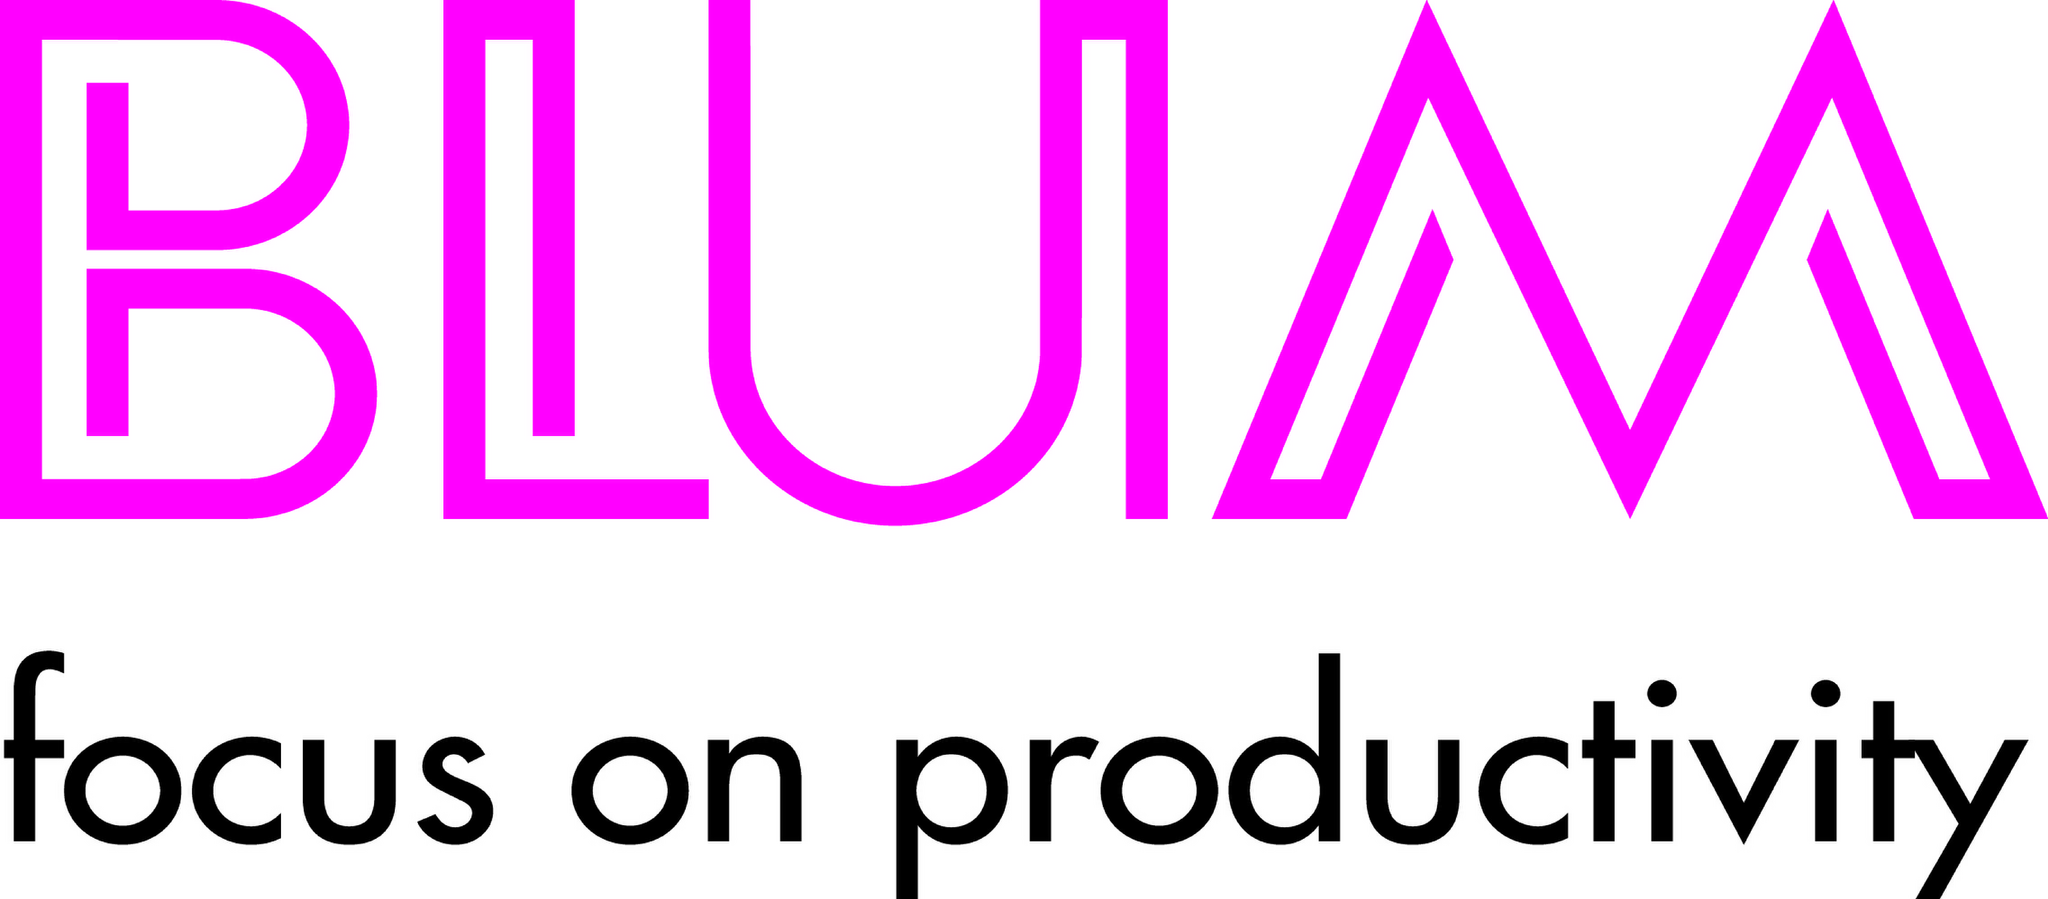 BLUM-NOVOTEST LTD.